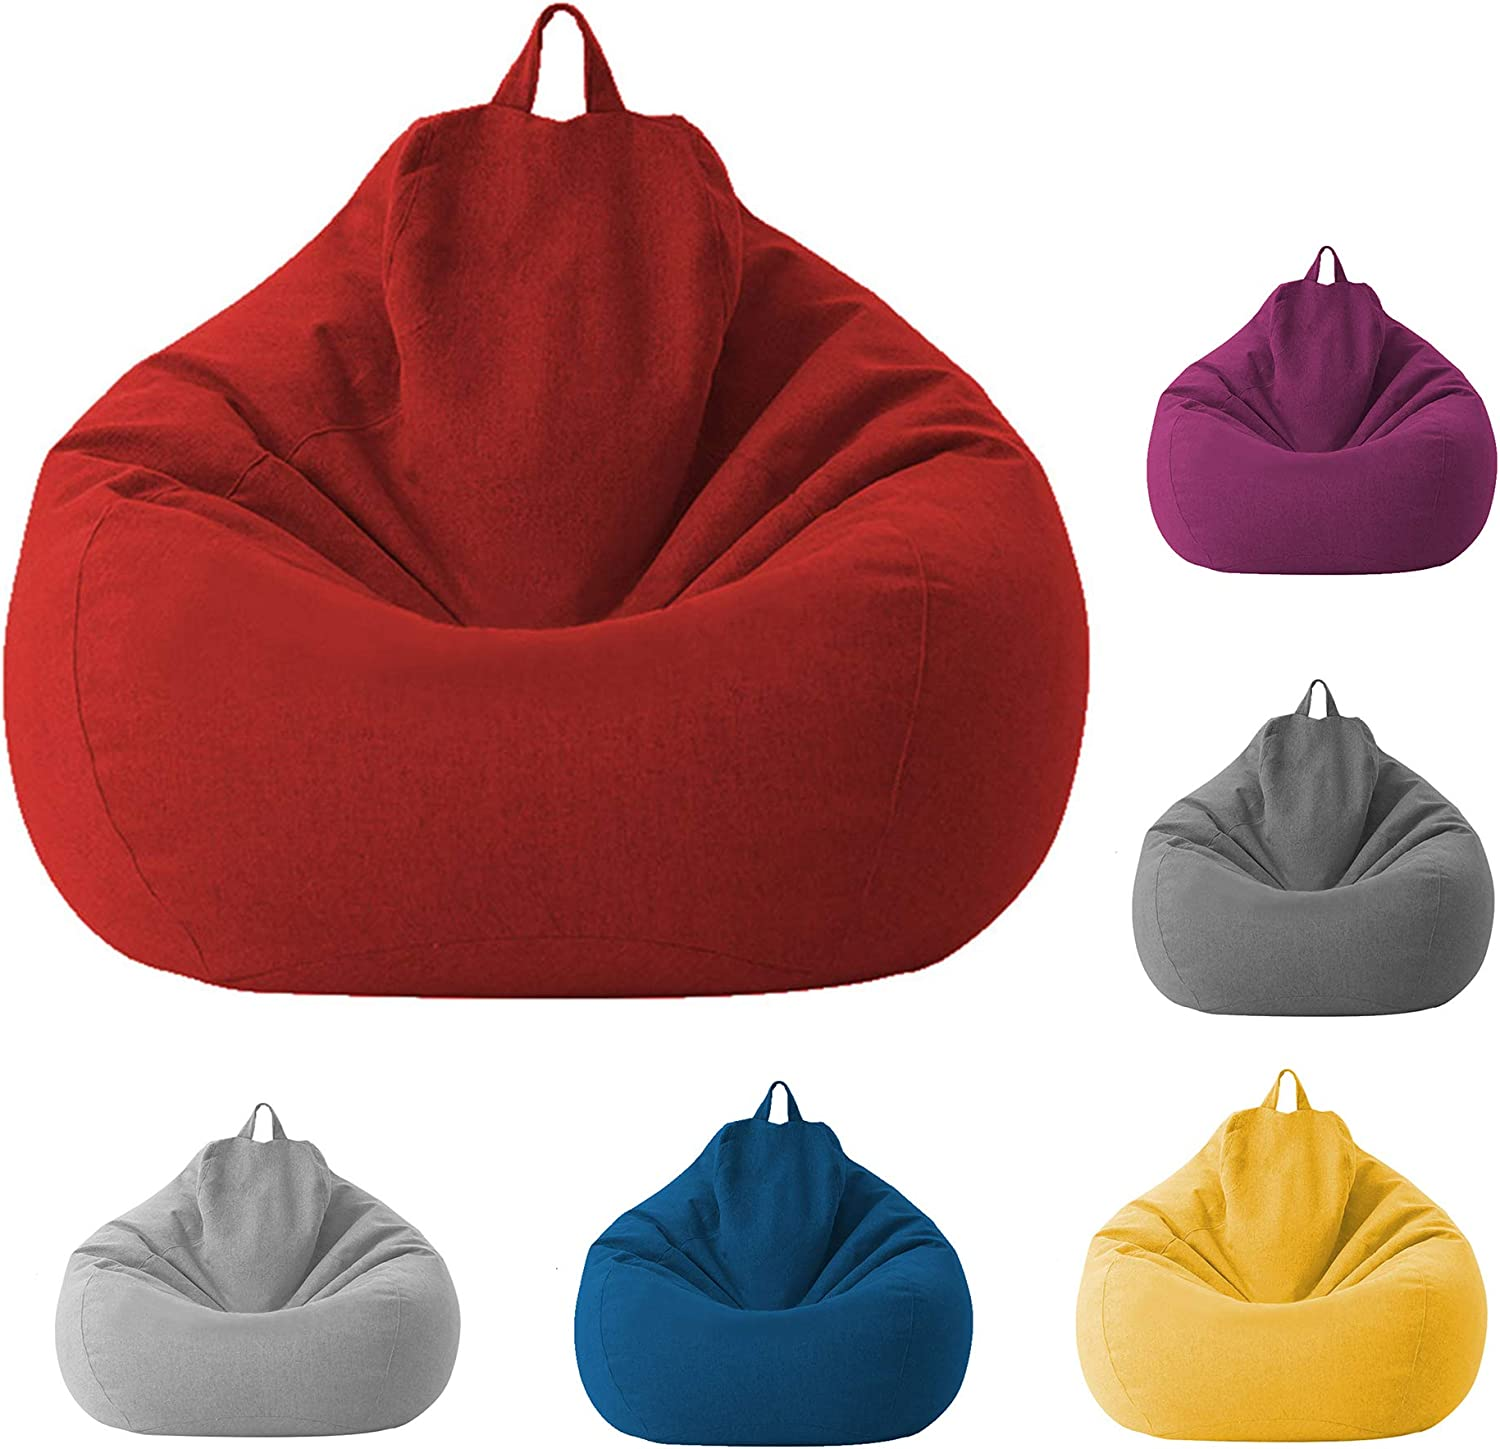 Bean Bag Chair Without Filling Max 86% OFF Clothes Zipper Stress Surprise price Puppy Relie